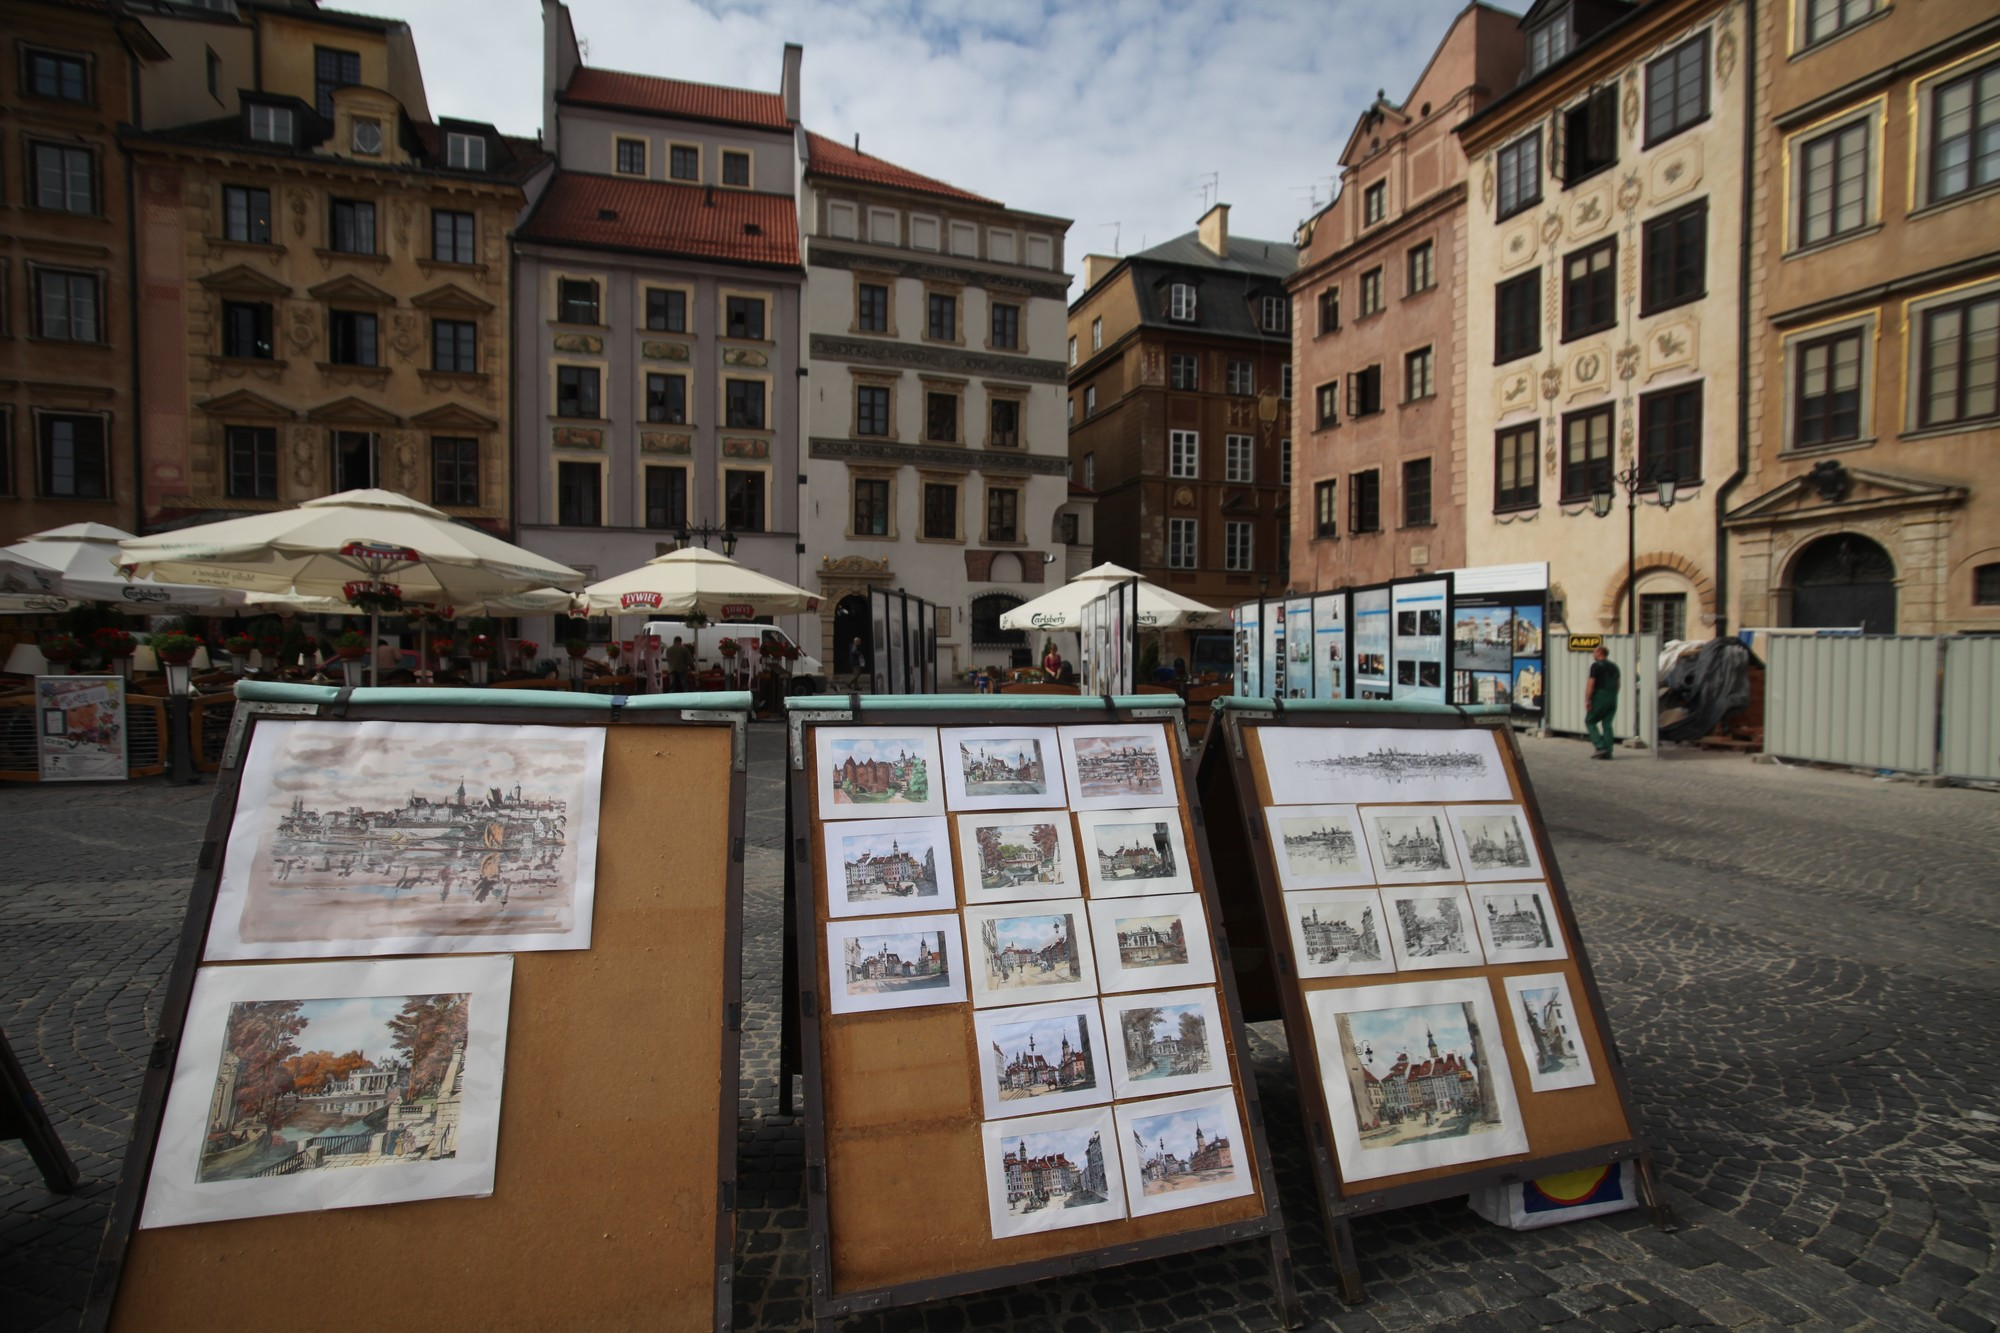 THE 10 BEST Things to Do in Bratislava - June 2020 (with